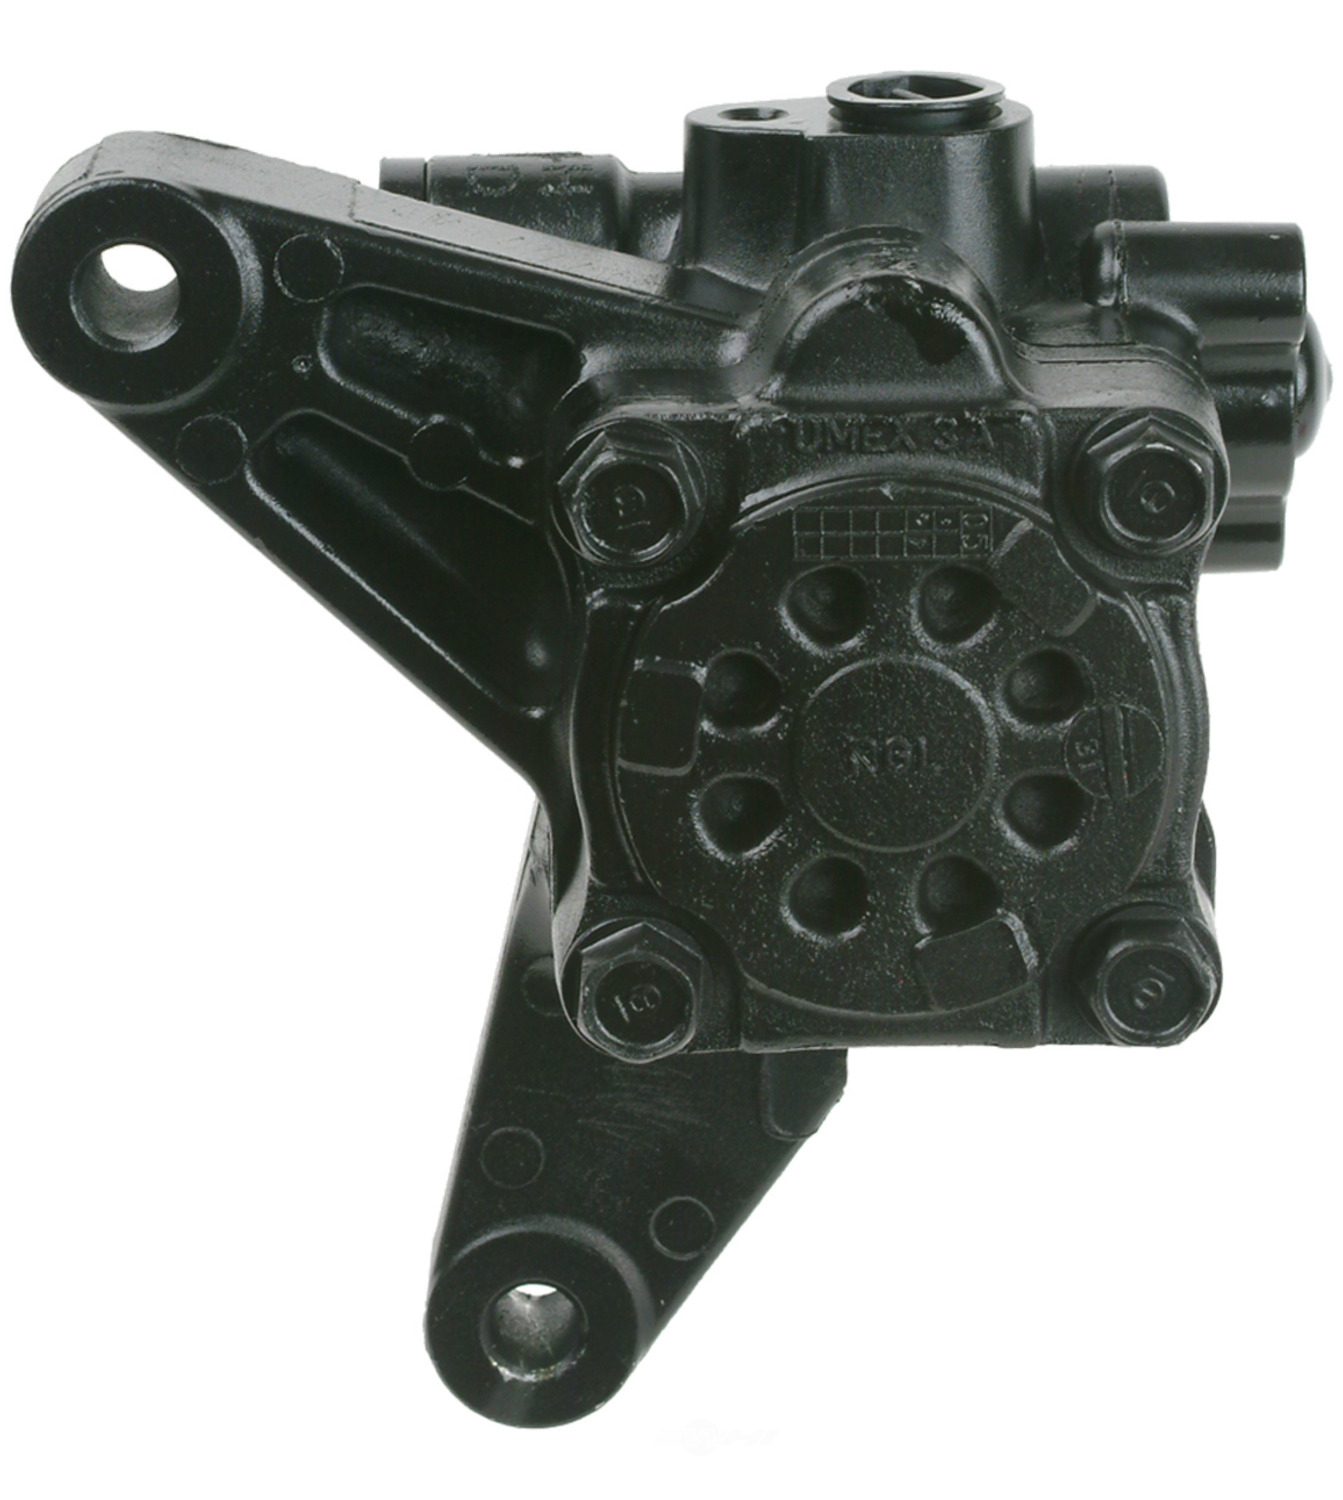 CARDONE / A-1 CARDONE - Reman A-1 Cardone Power Steering Pump - A1C 21-5442